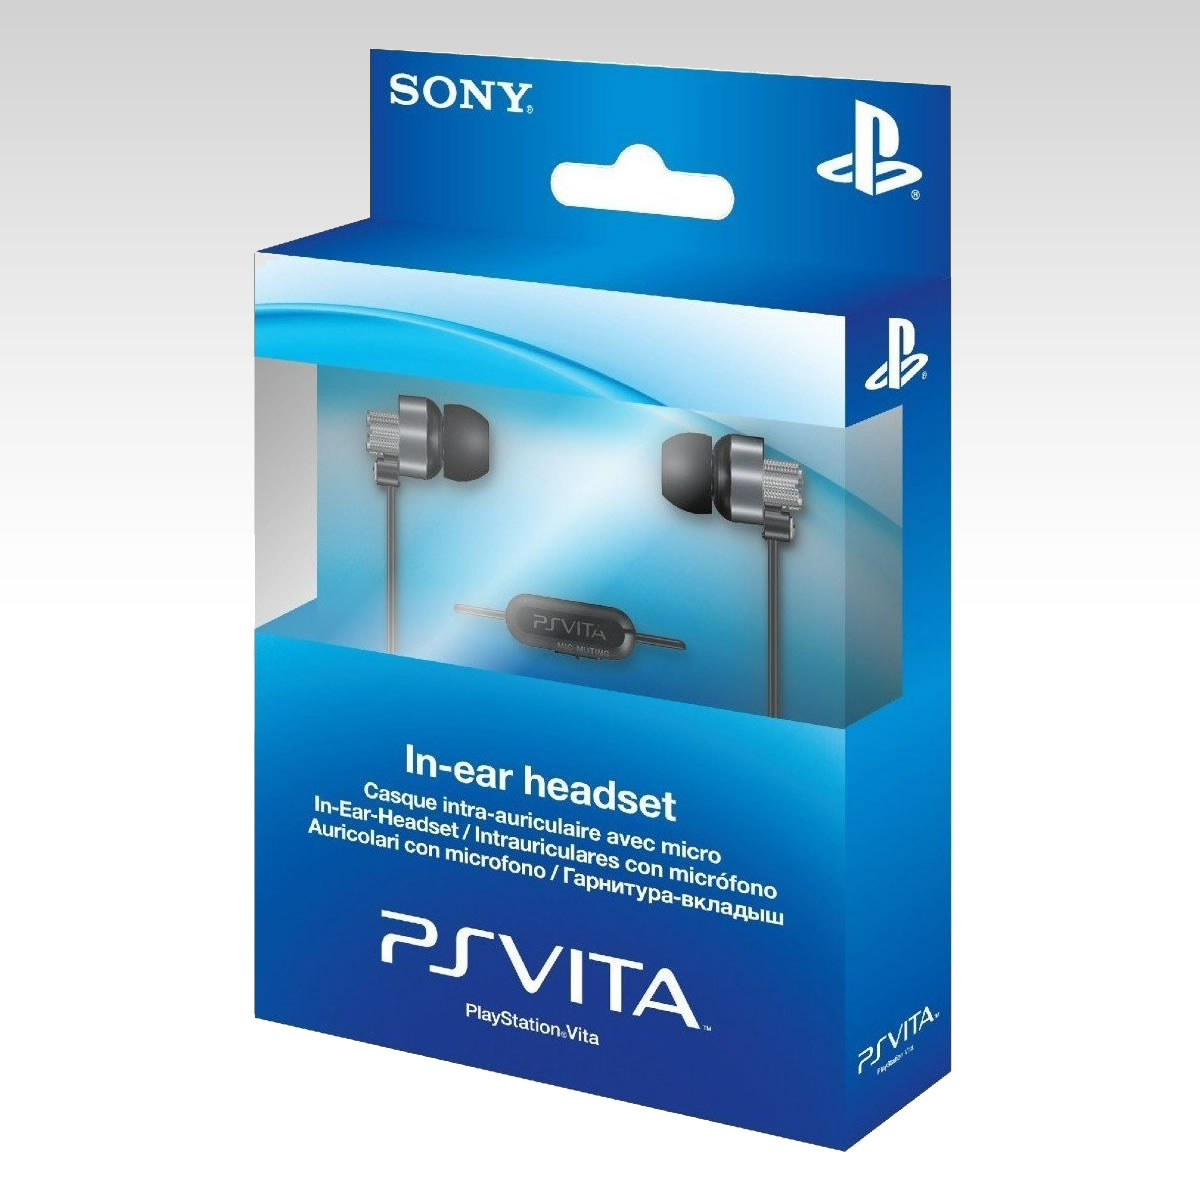 SONY OFFICIAL PS VITA In-ear HEADSET - SONY PS VITA  ΕΠΙΣΗΜΑ In-ear ΣΤΕΡΕΟΦΩΝΙΚΑ ΑΚΟΥΣΤΙΚΑ (PS VITA)